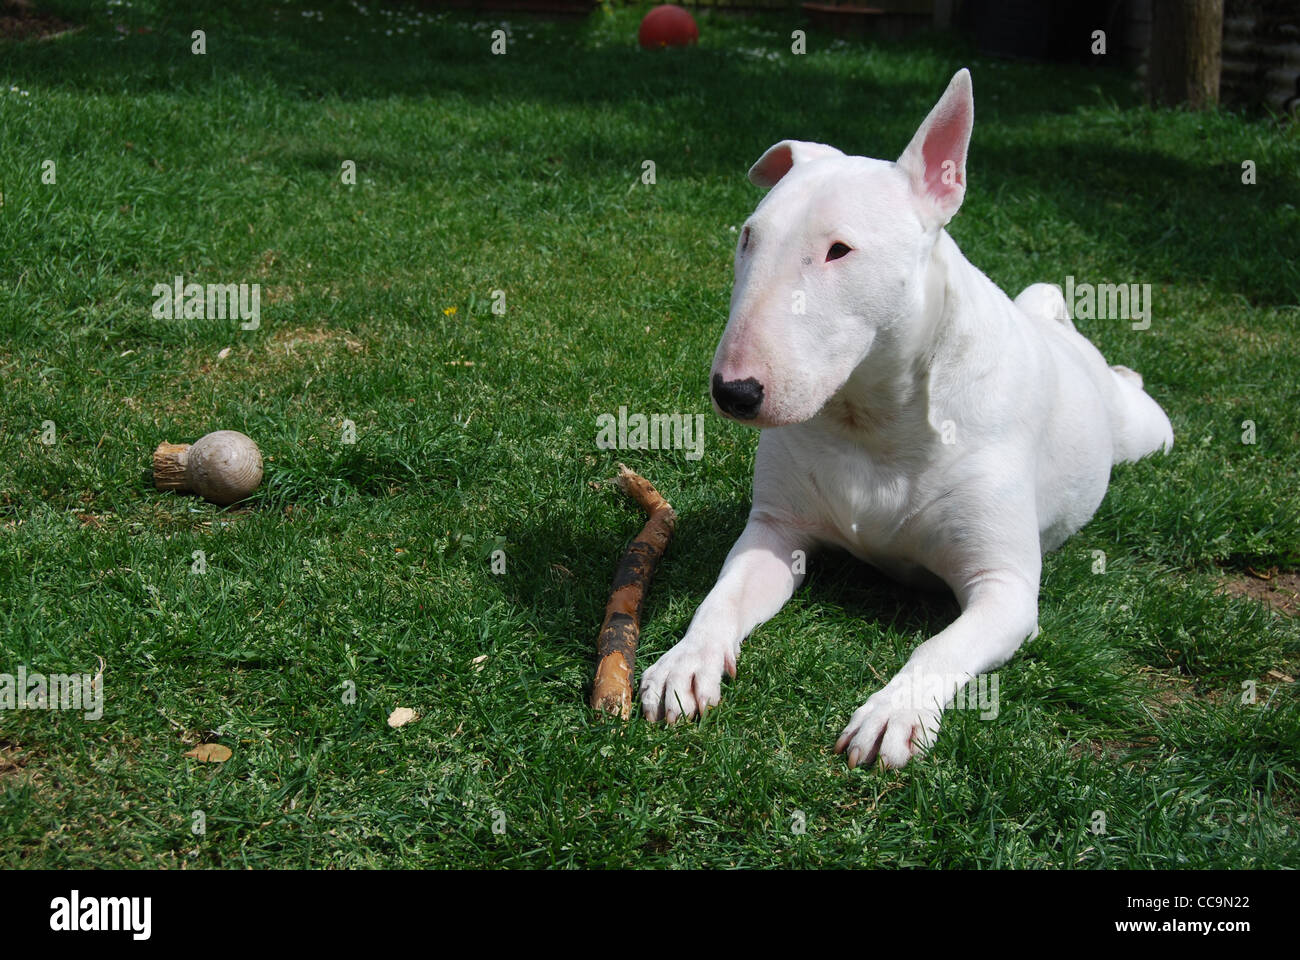 UK, England, Essex, White English Bull Terrier Laying Down in Green Grass With a Stick. - Stock Image